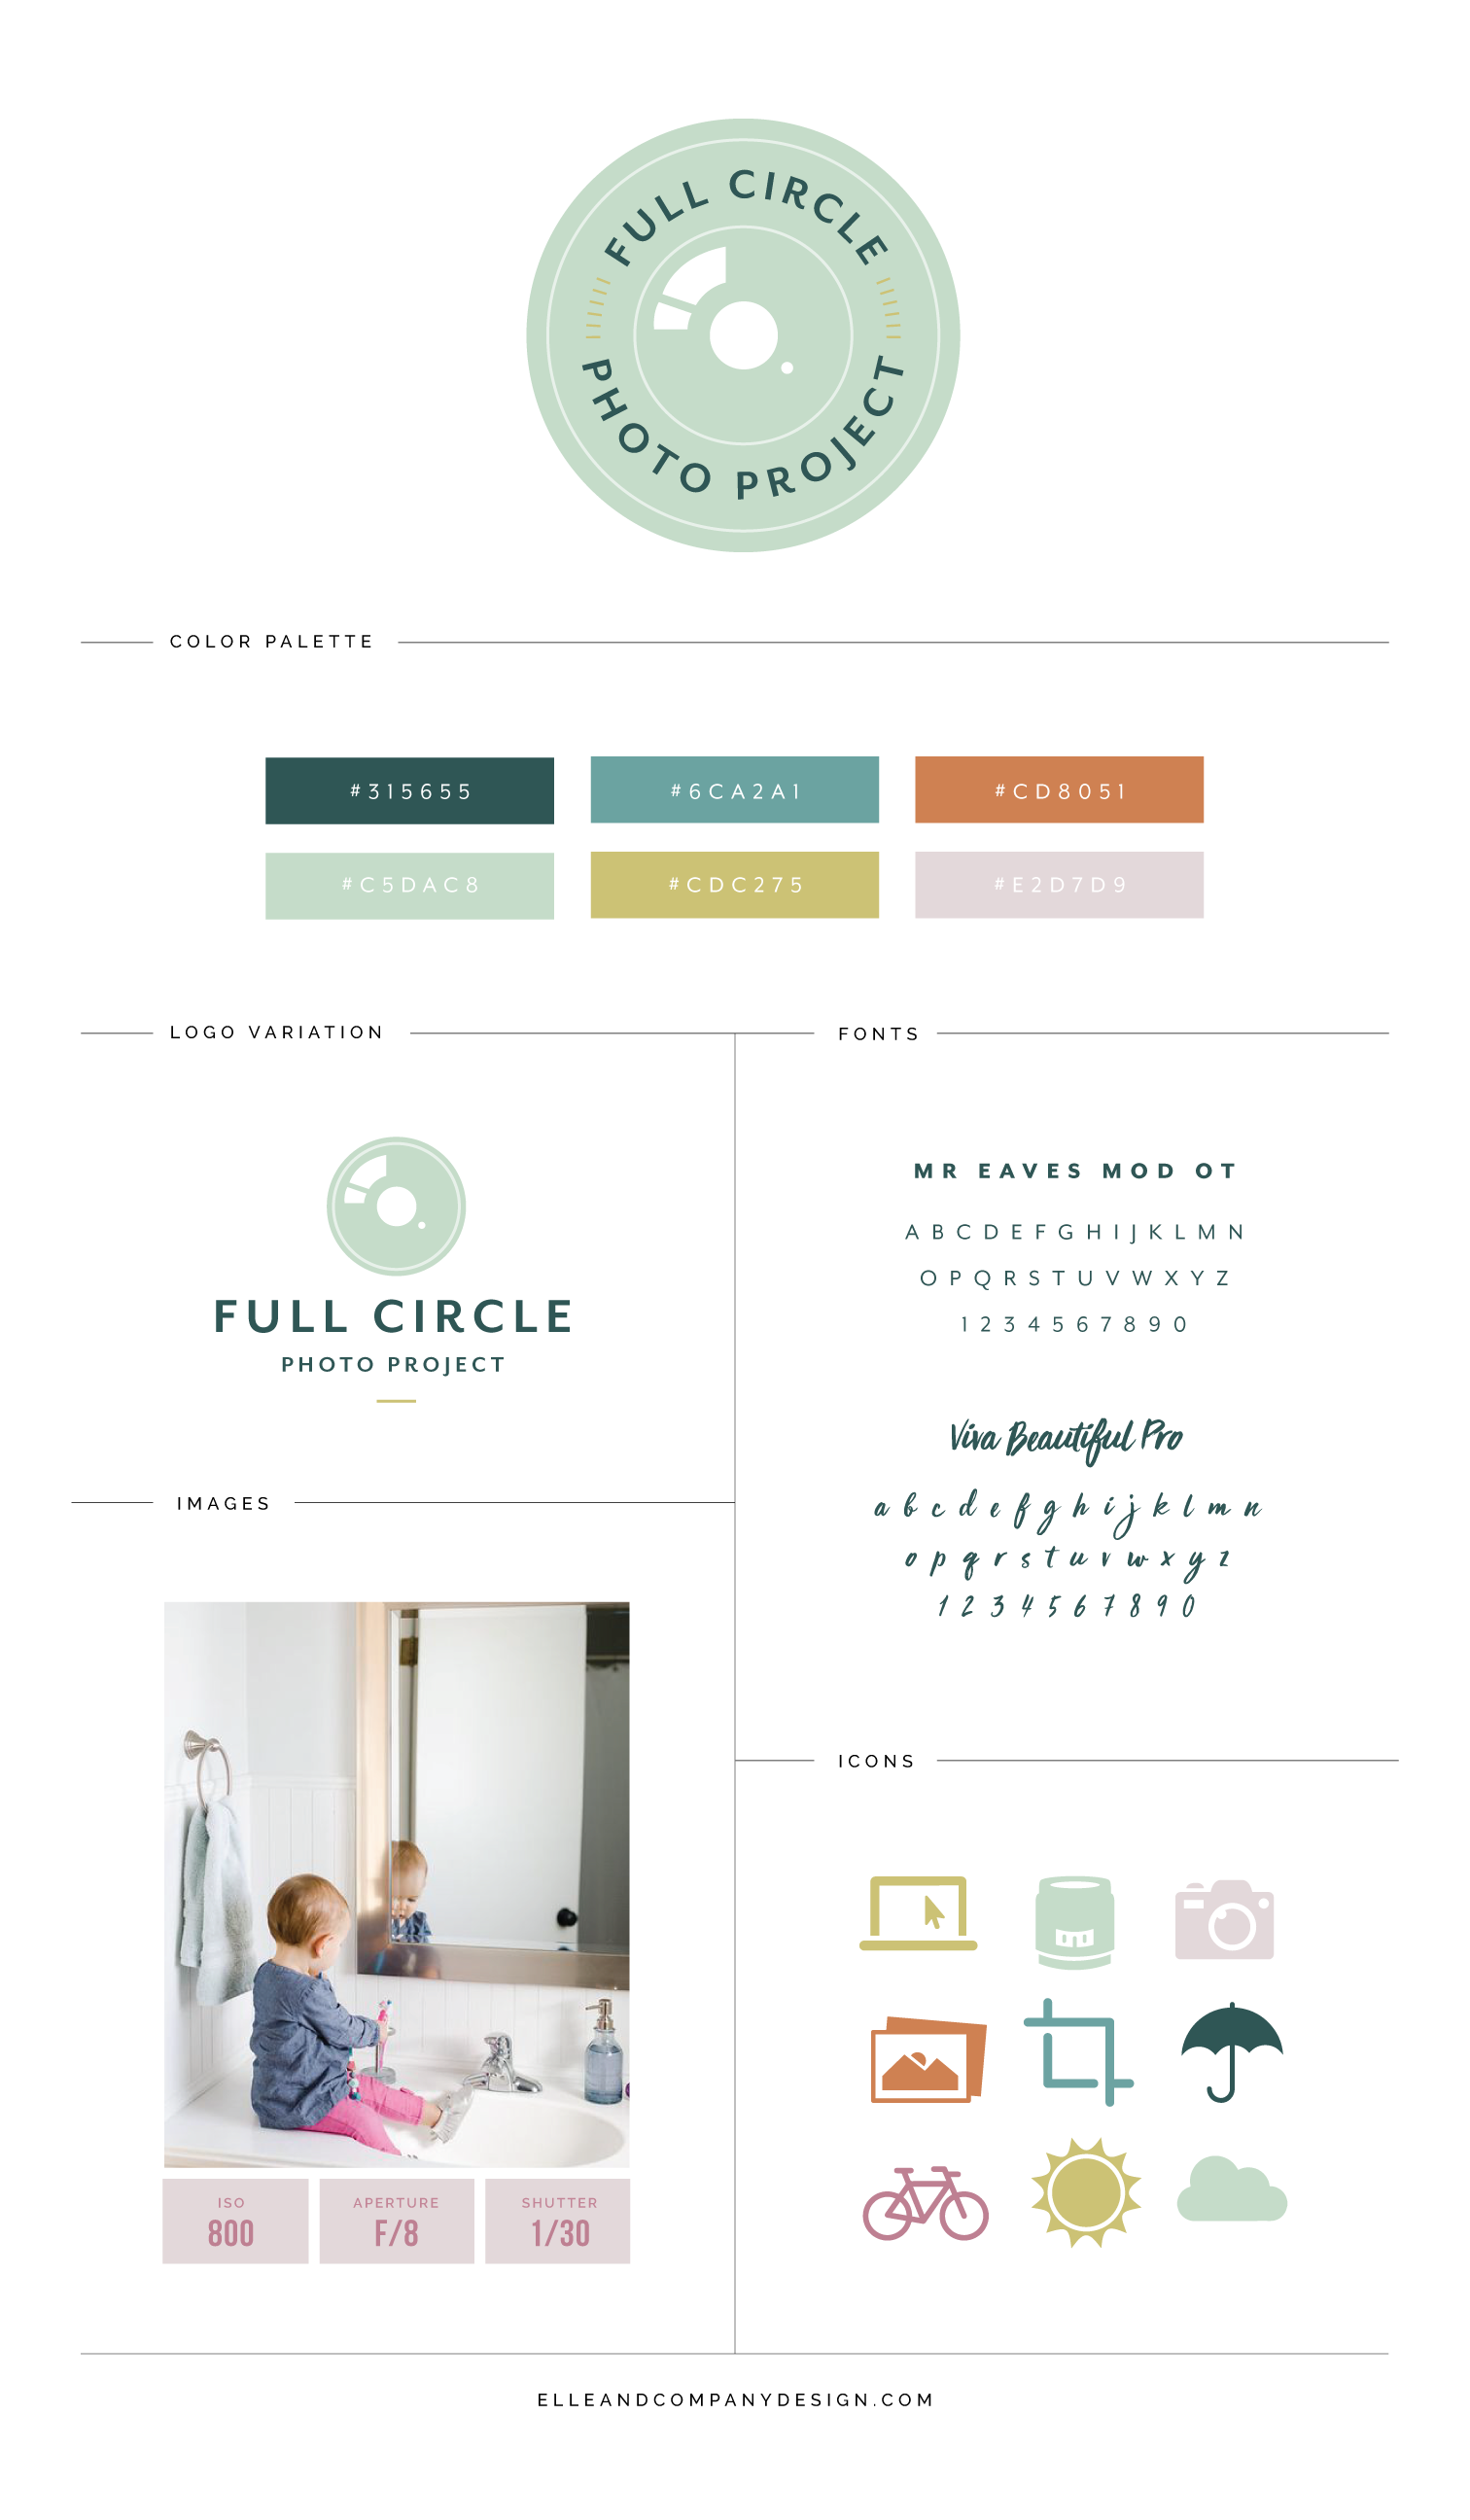 New Brand + Website Design for Full Circle Photo Project | Elle & Company